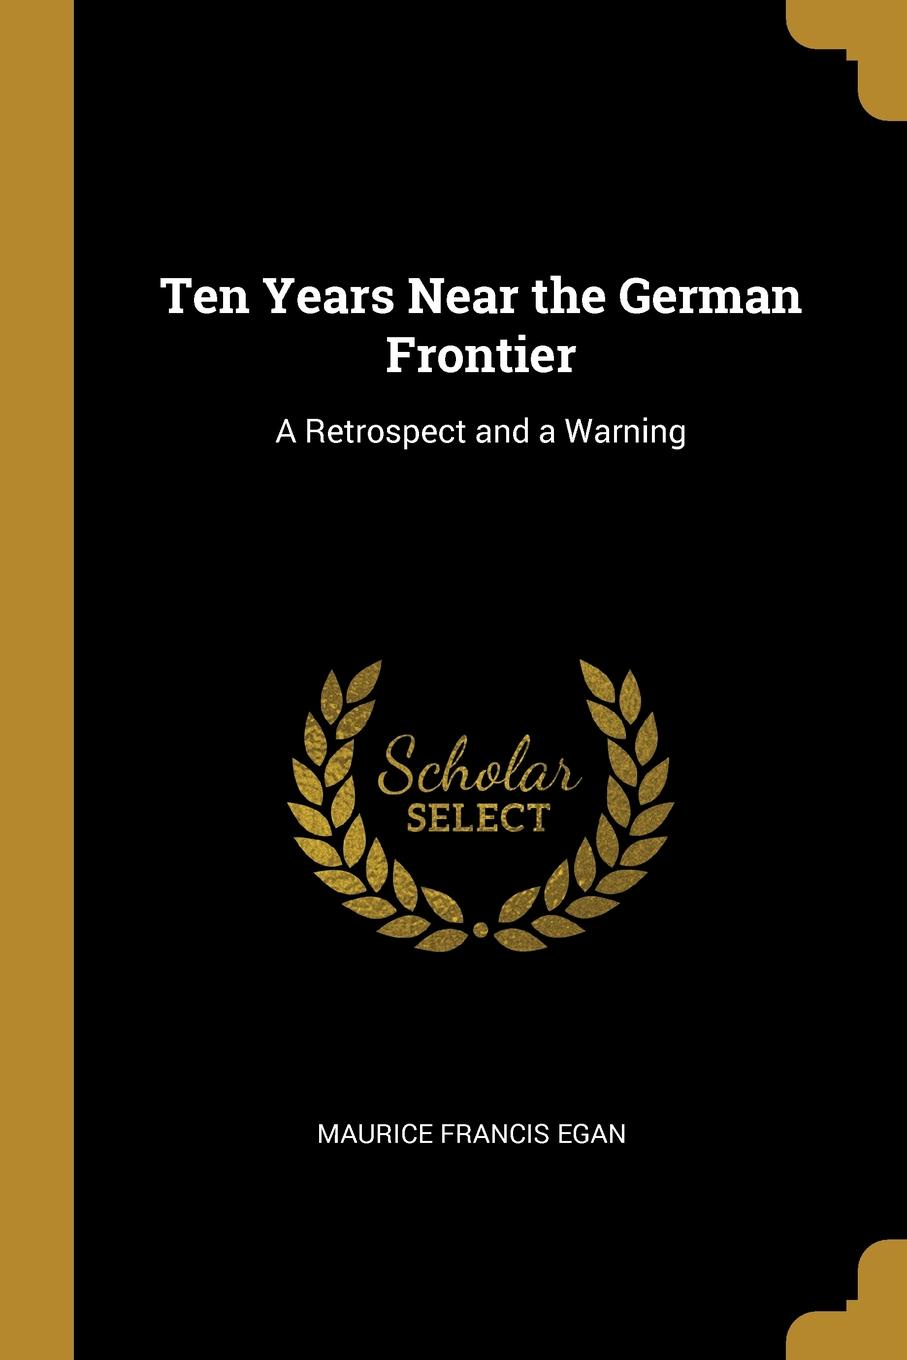 Maurice Francis Egan. Ten Years Near the German Frontier. A Retrospect and a Warning